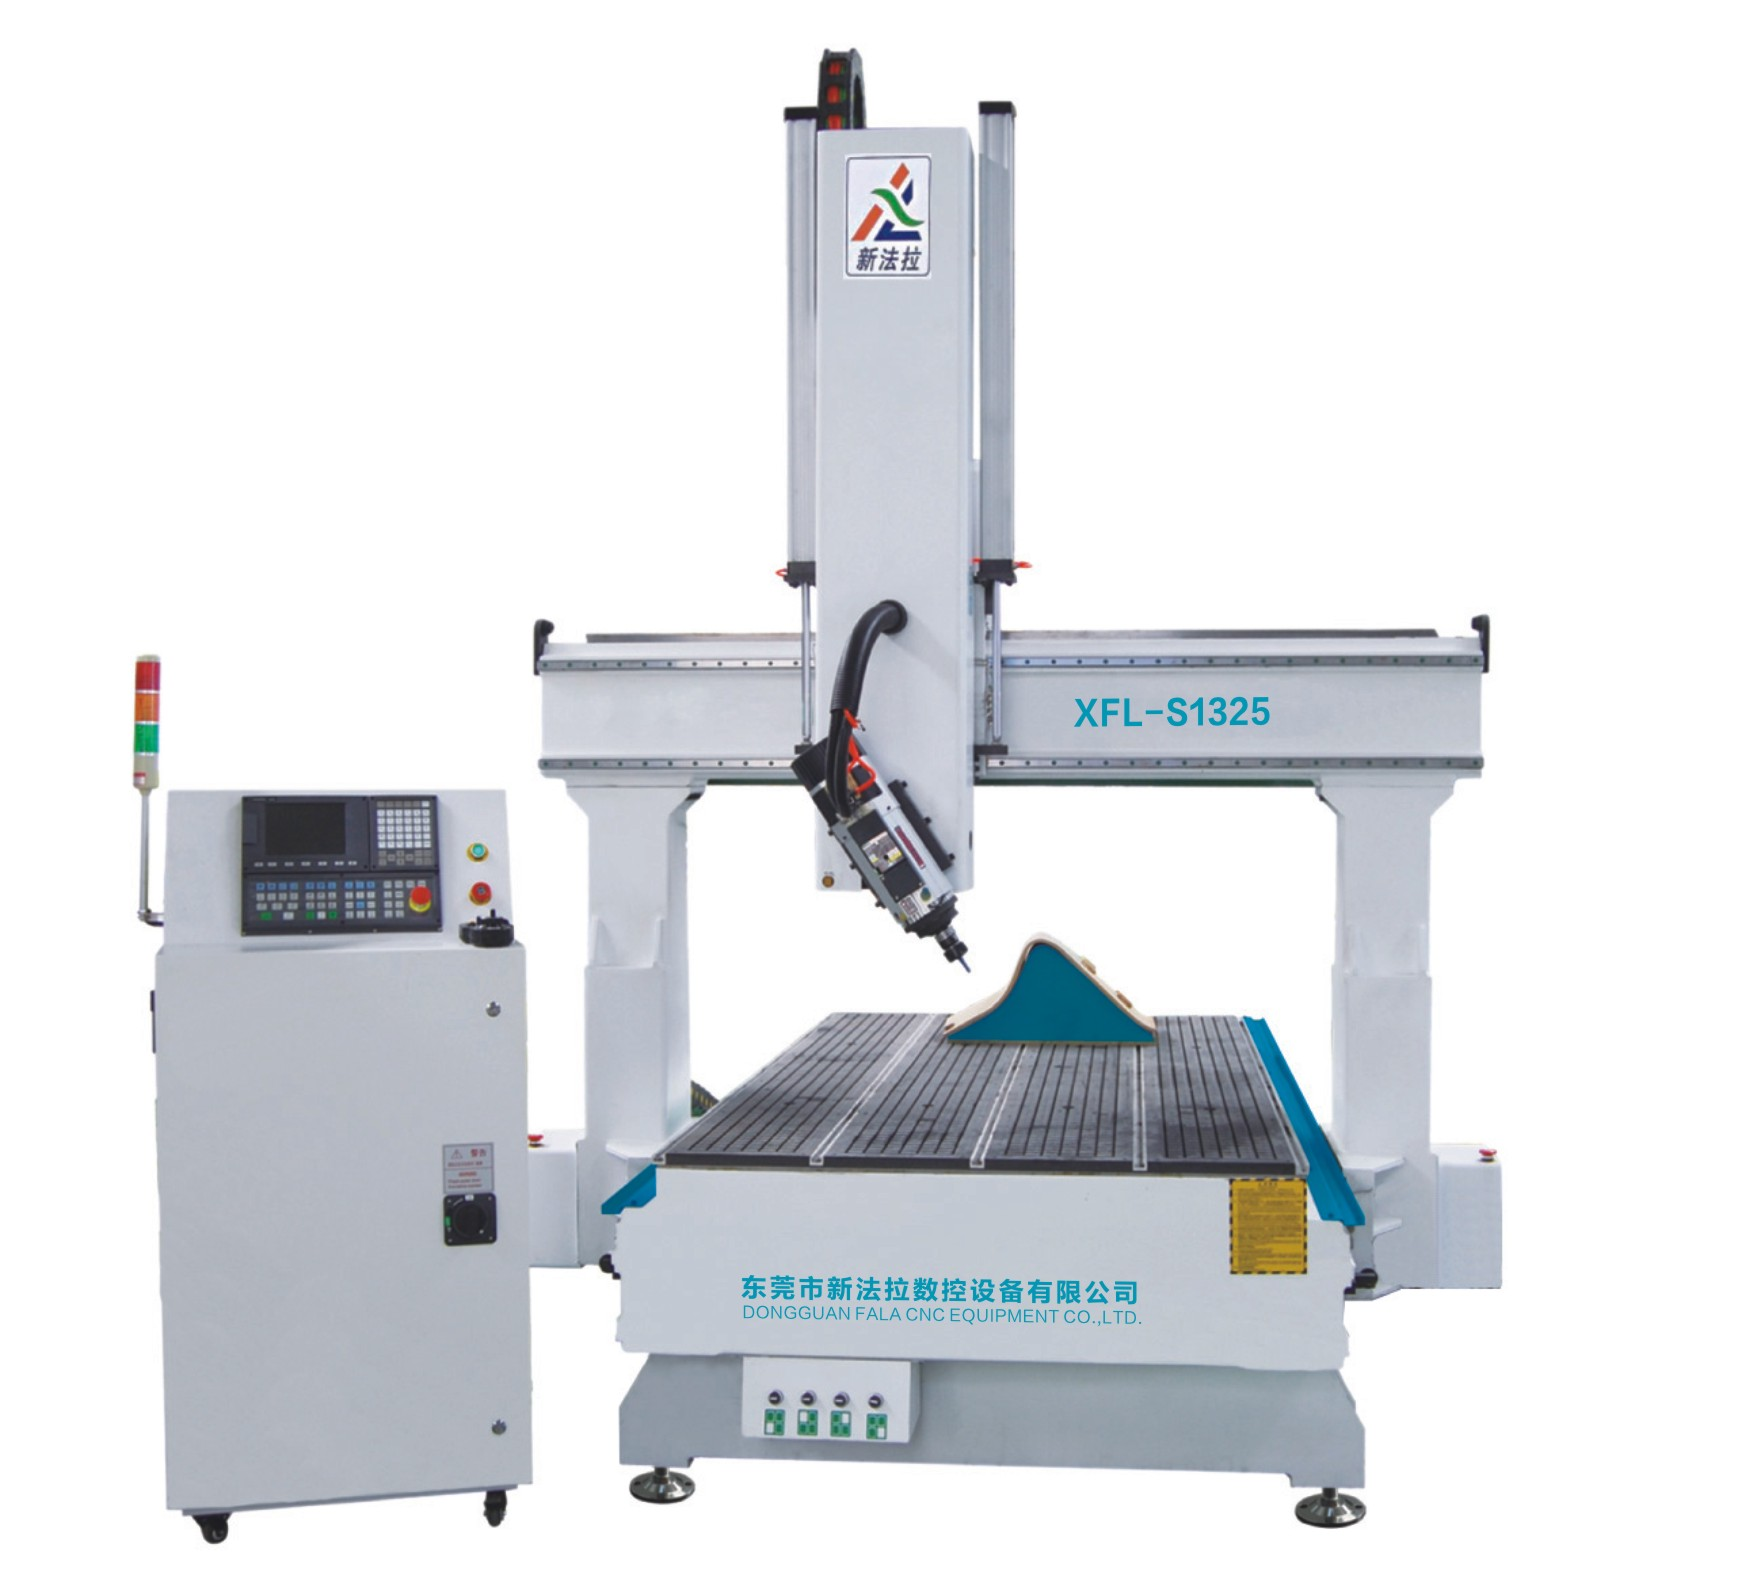 XFL-S1325 4 axis cnc engraving machine cnc router